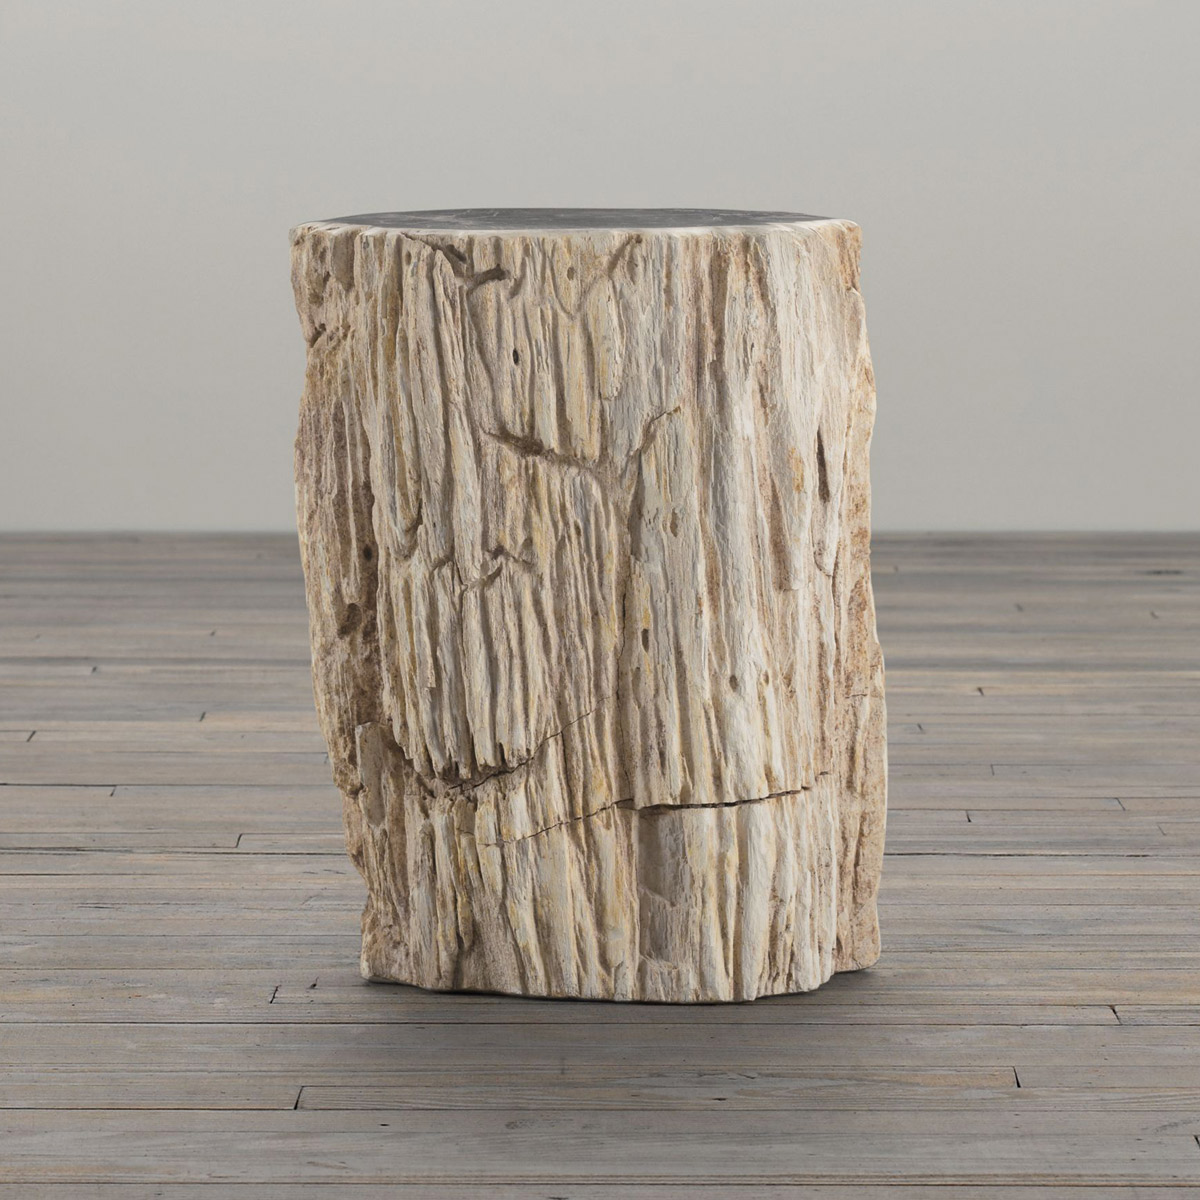 how to make a wood stump end table | Quick Woodworking ...